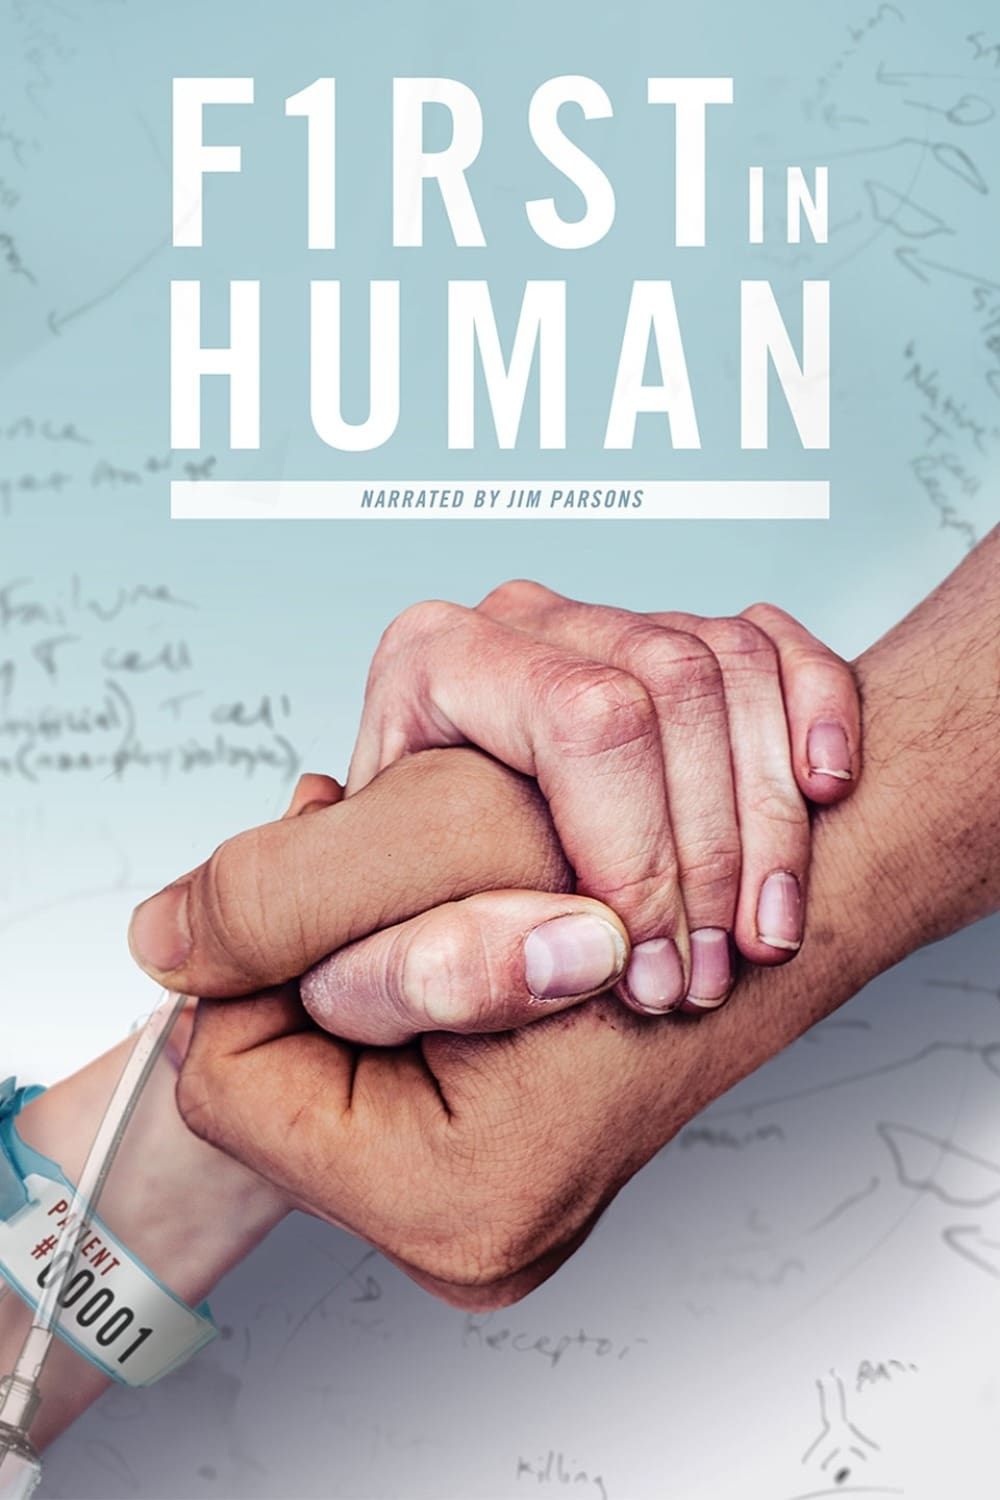 First in Human (2017)